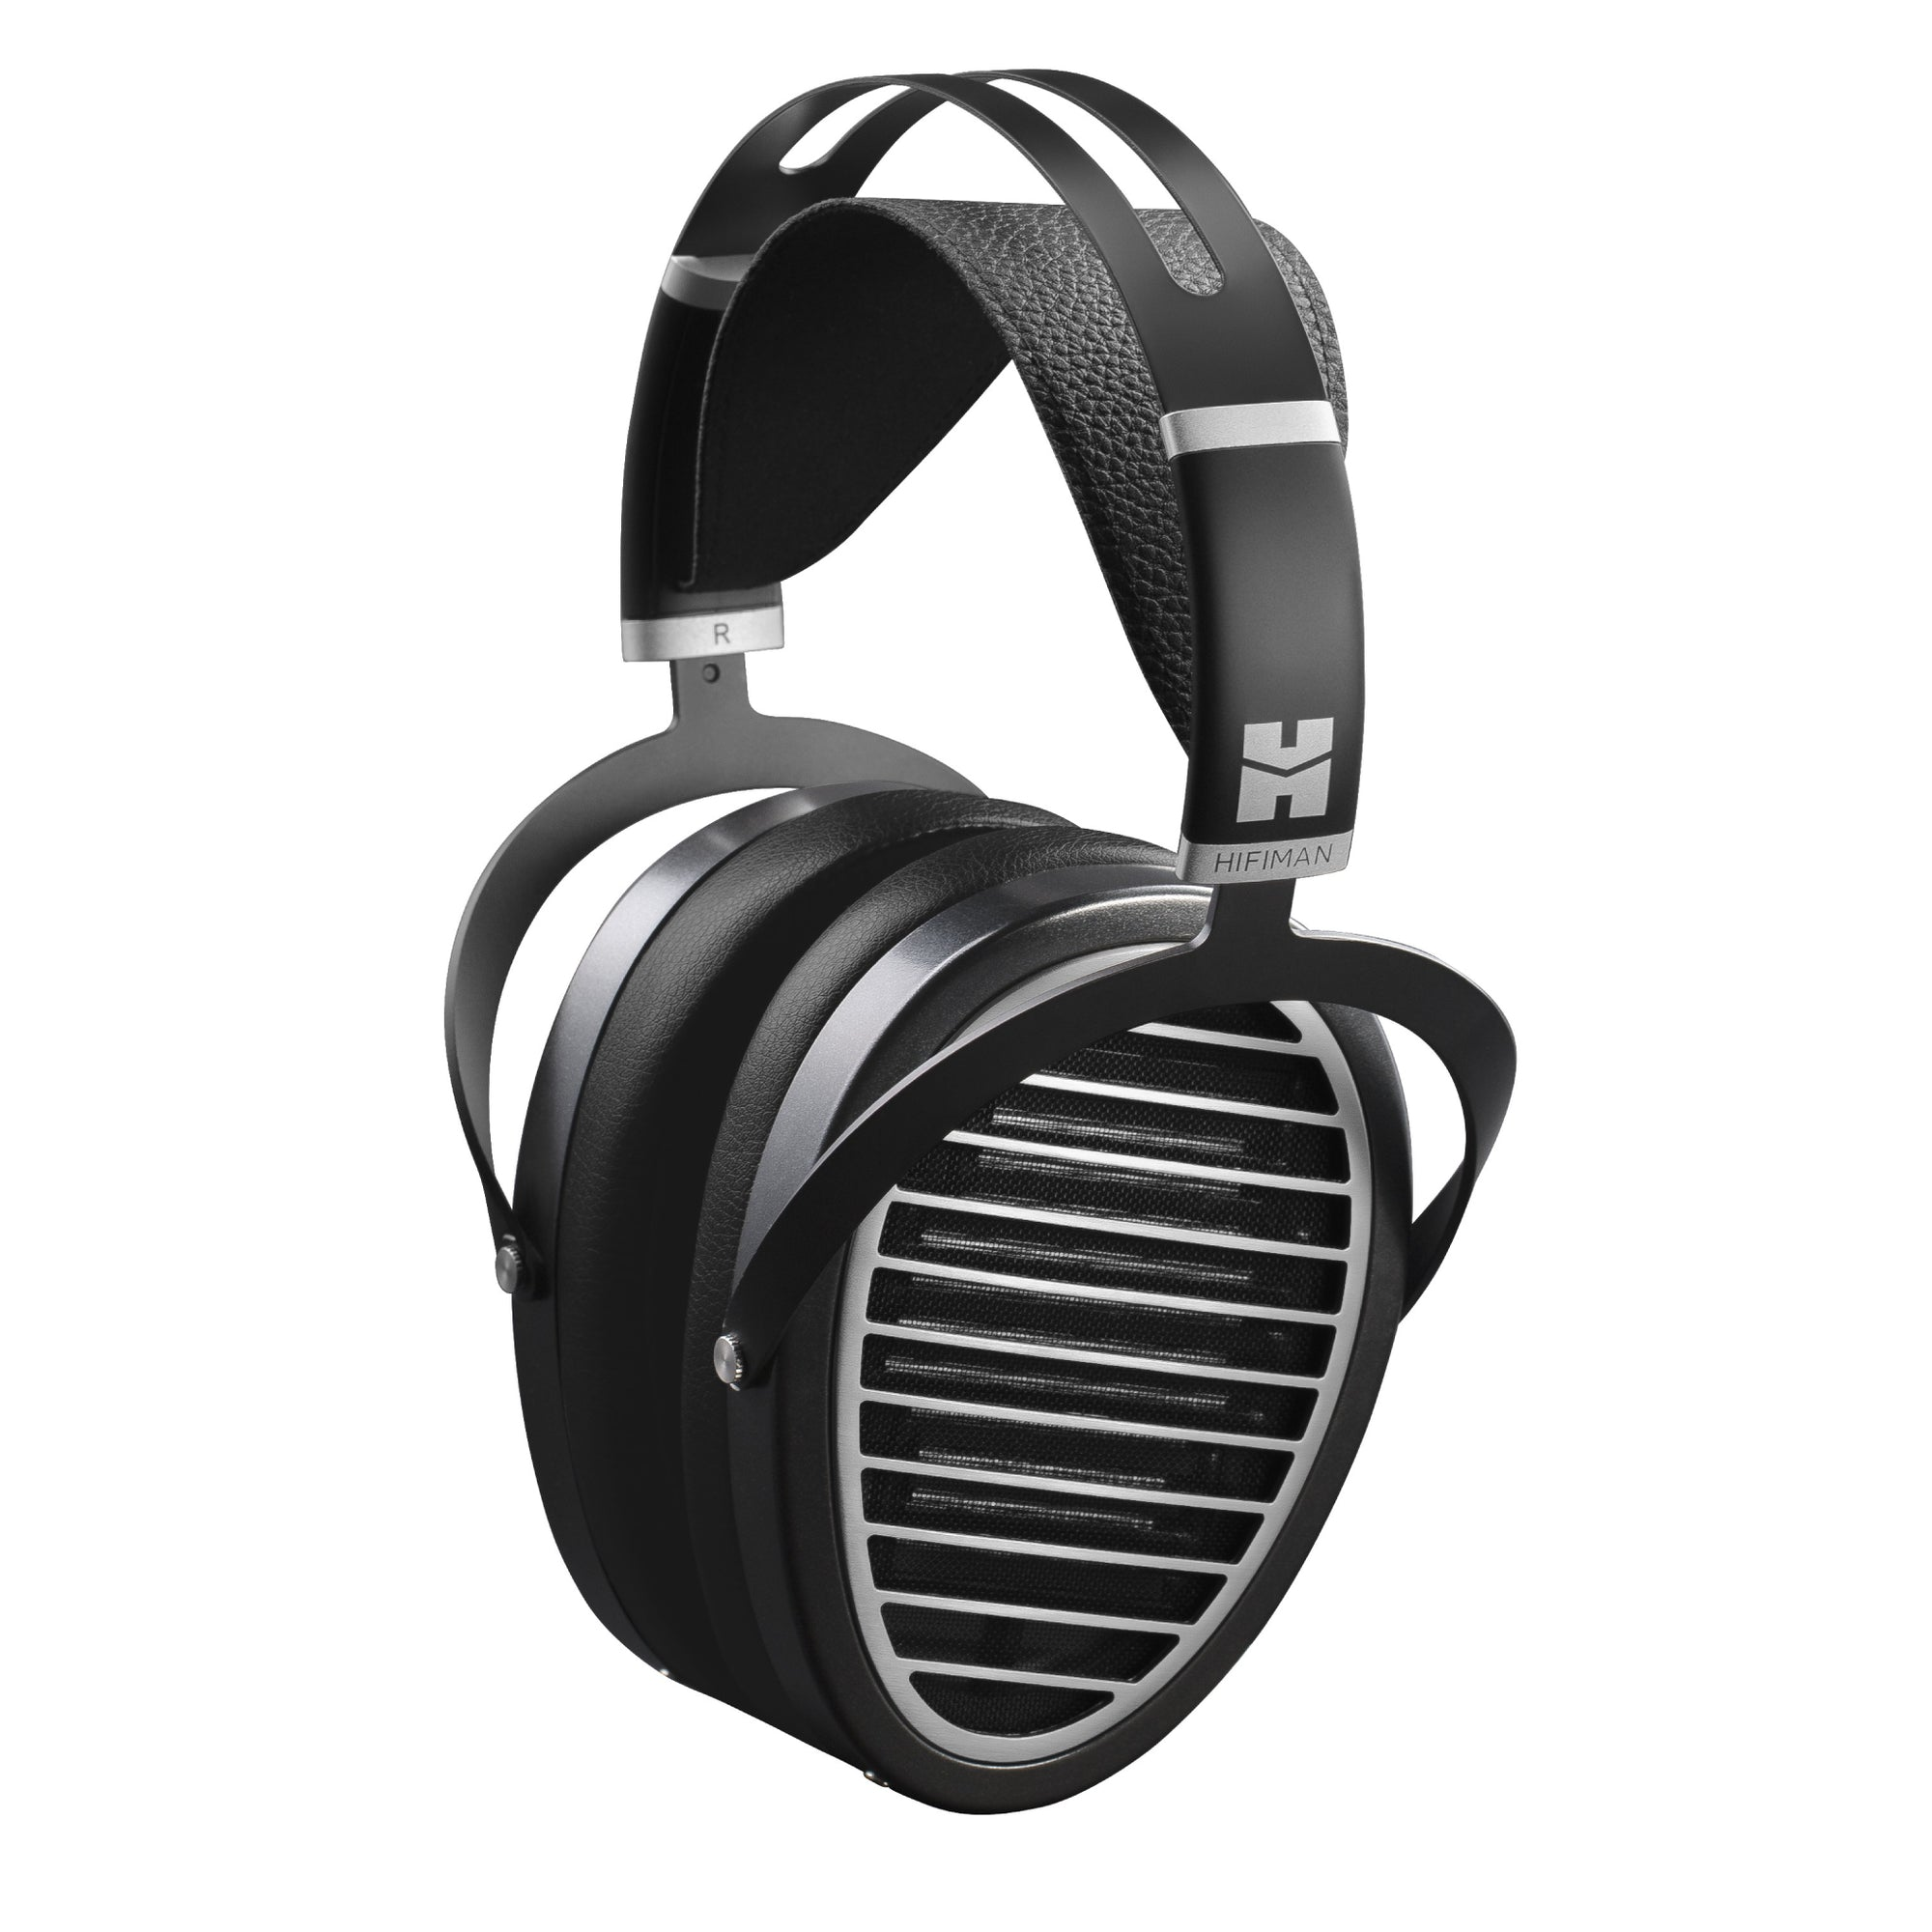 Hifiman Ananda Planar Magnetic Headphone - Gears For Ears